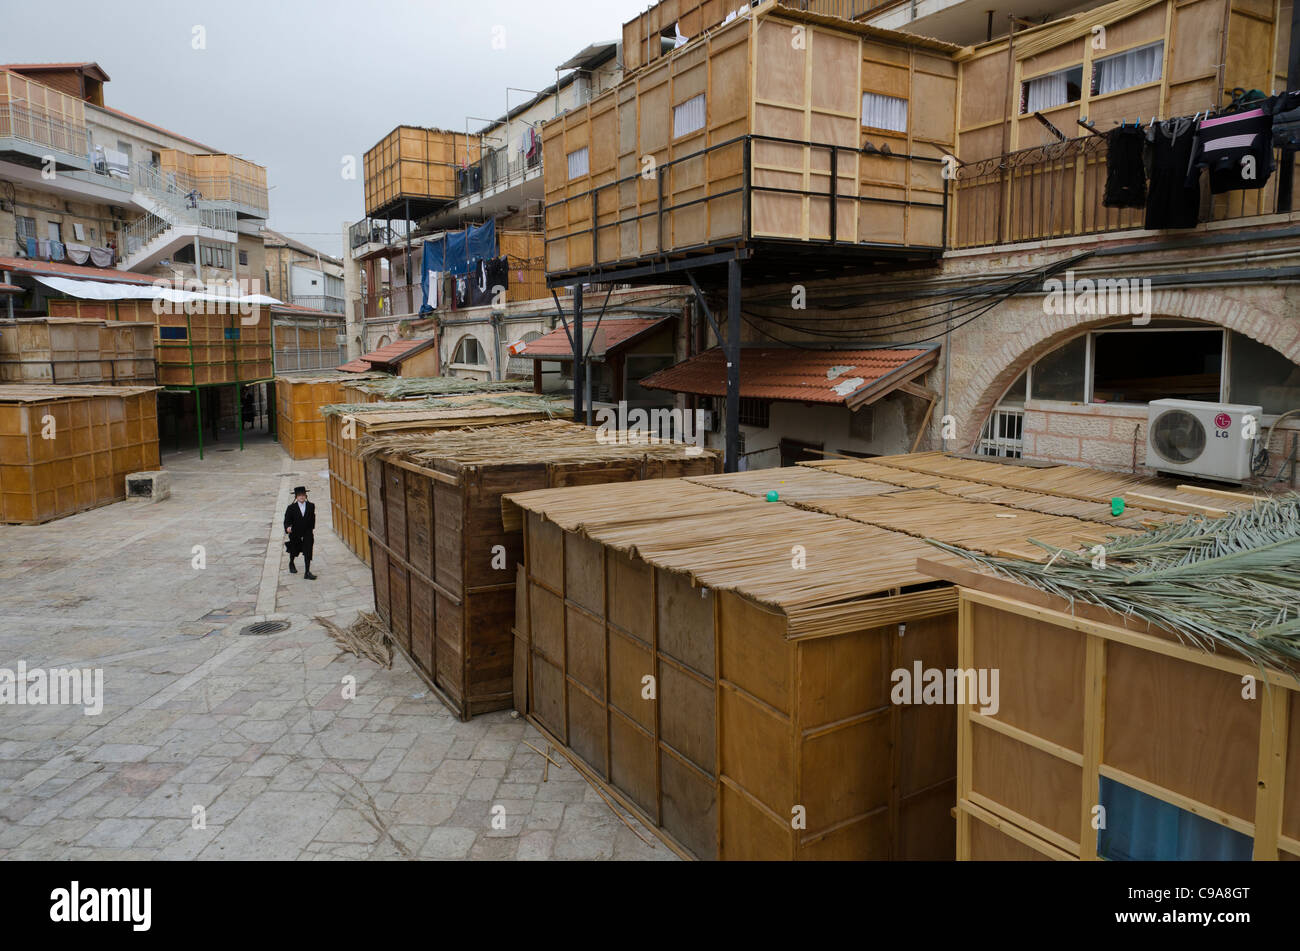 view with housing and booths. Sukkot festival. Mea Shearim. israel - Stock Image